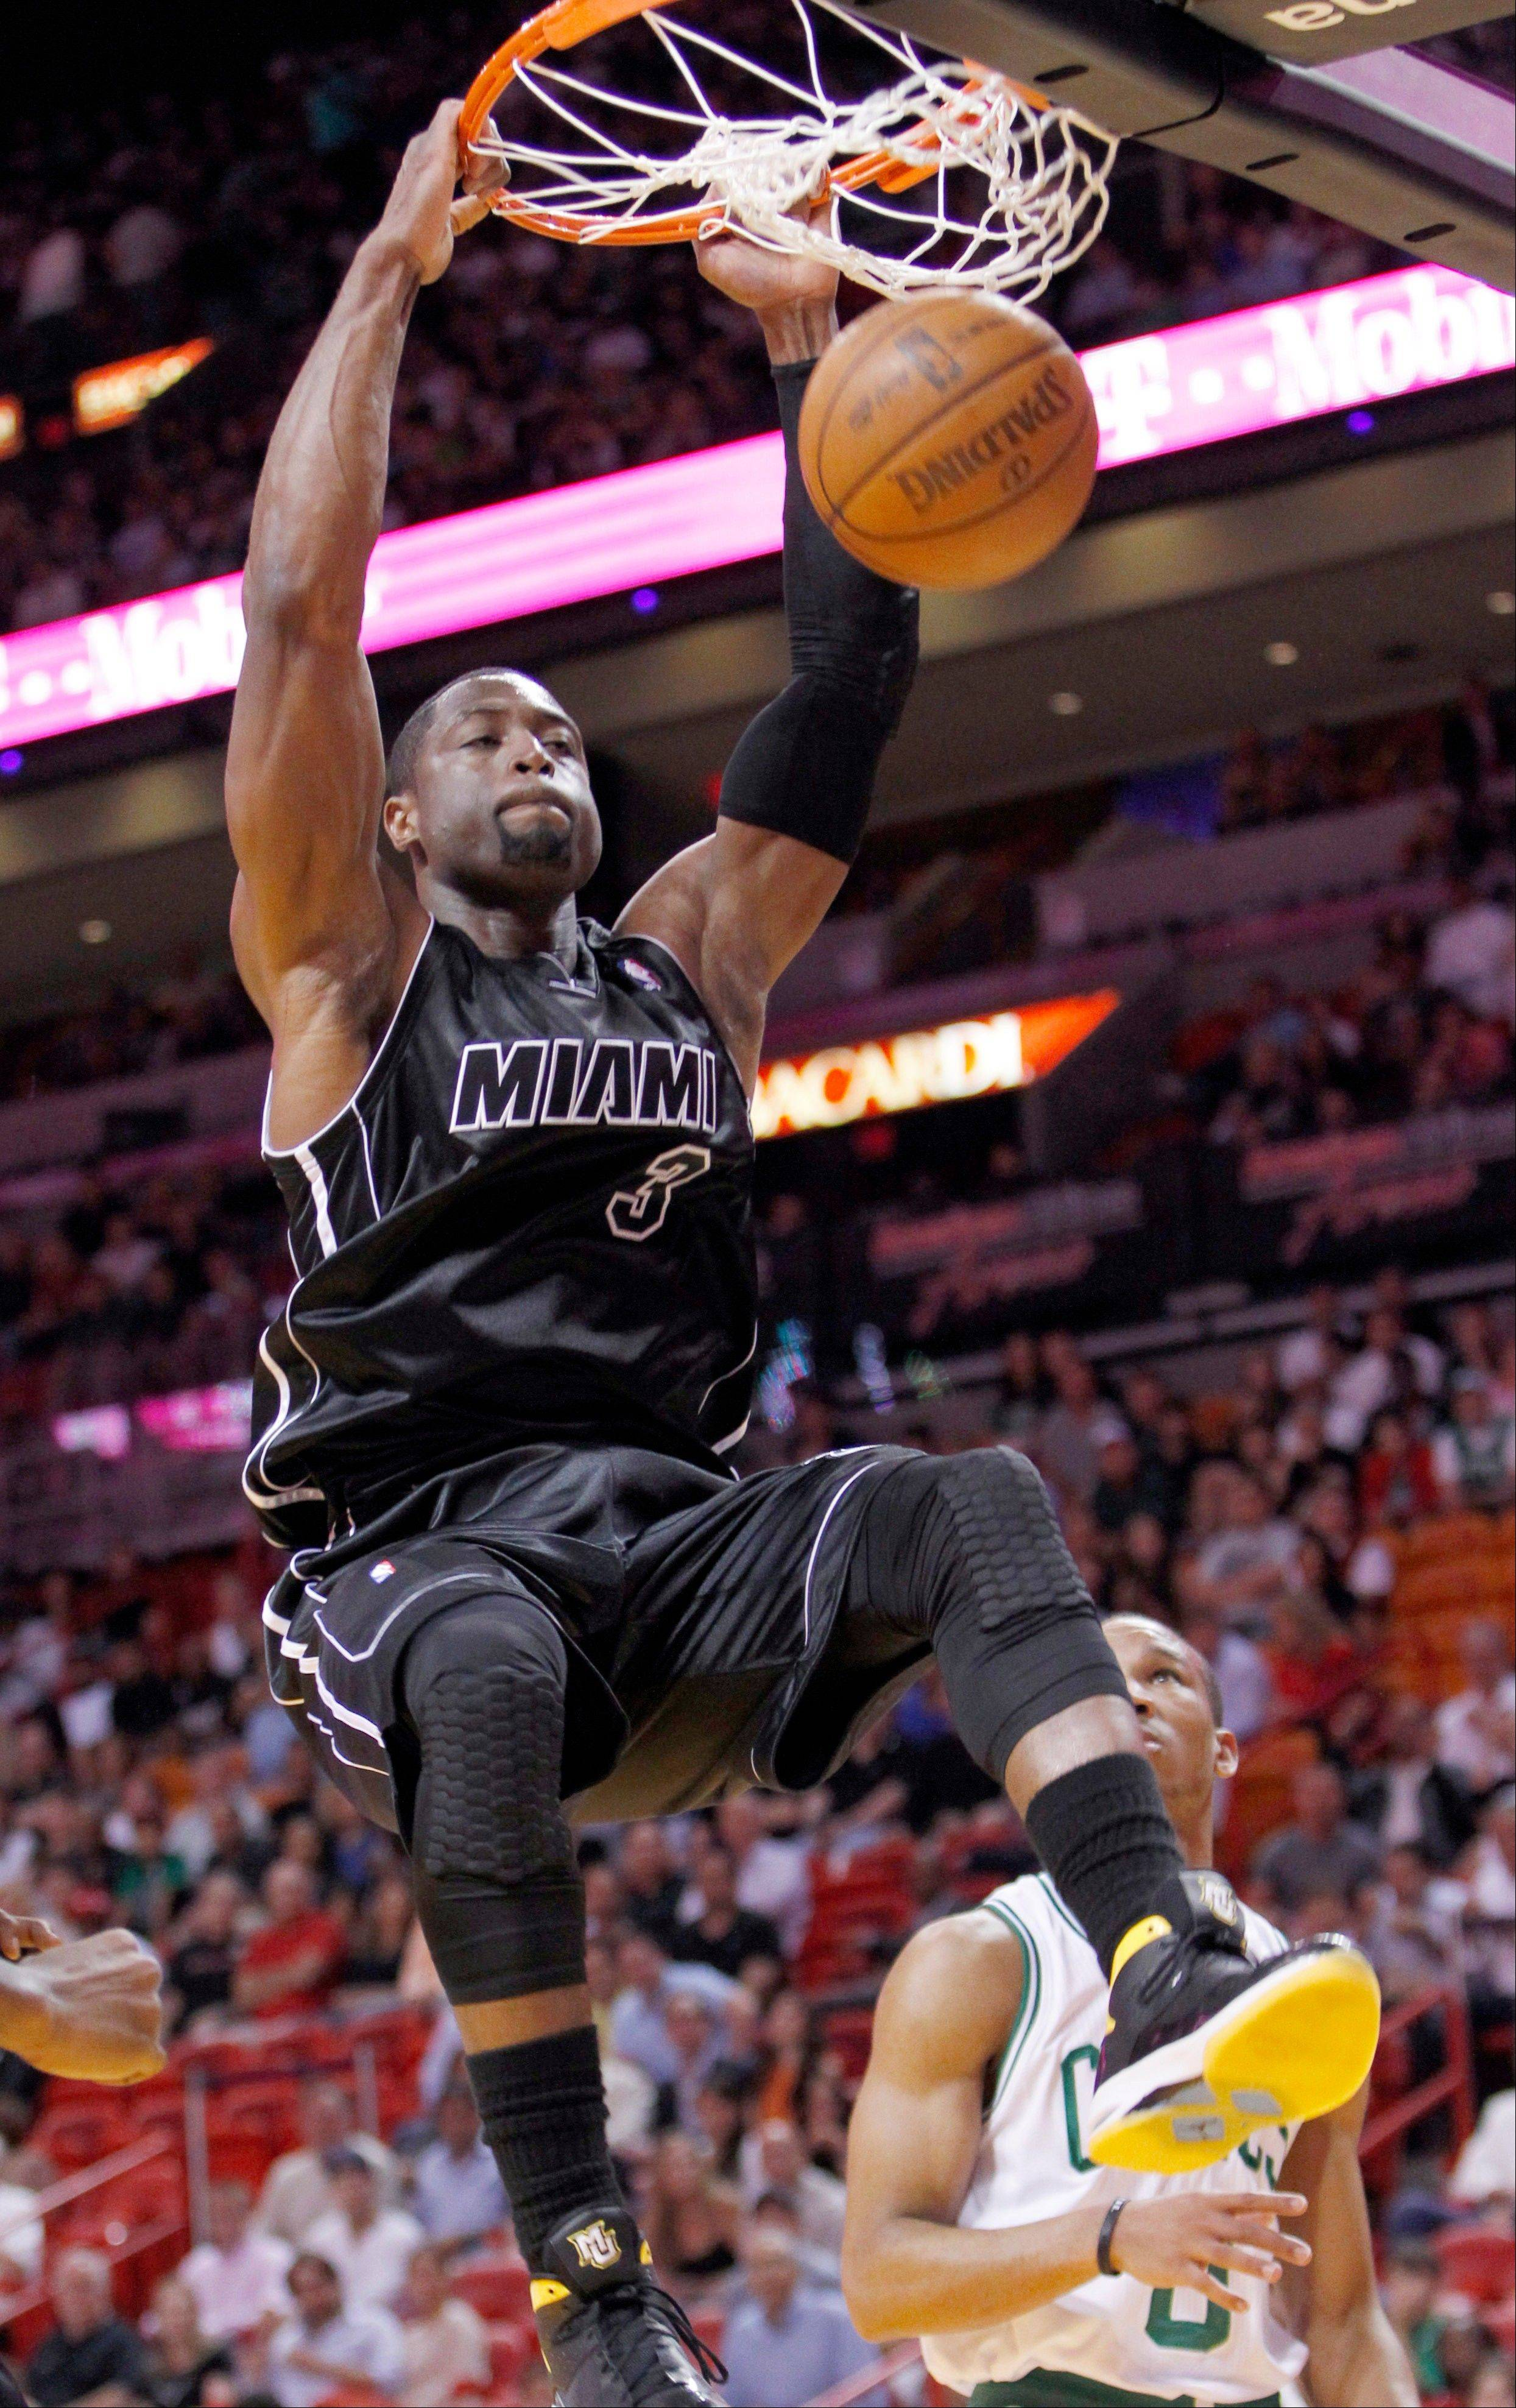 Miami Heat guard Dwyane Wade (3) dunks the ball as Boston Celtics guard Avery Bradley, rear, looks on during the first half of an NBA basketball game, Tuesday, April 10, 2012 in Miami.